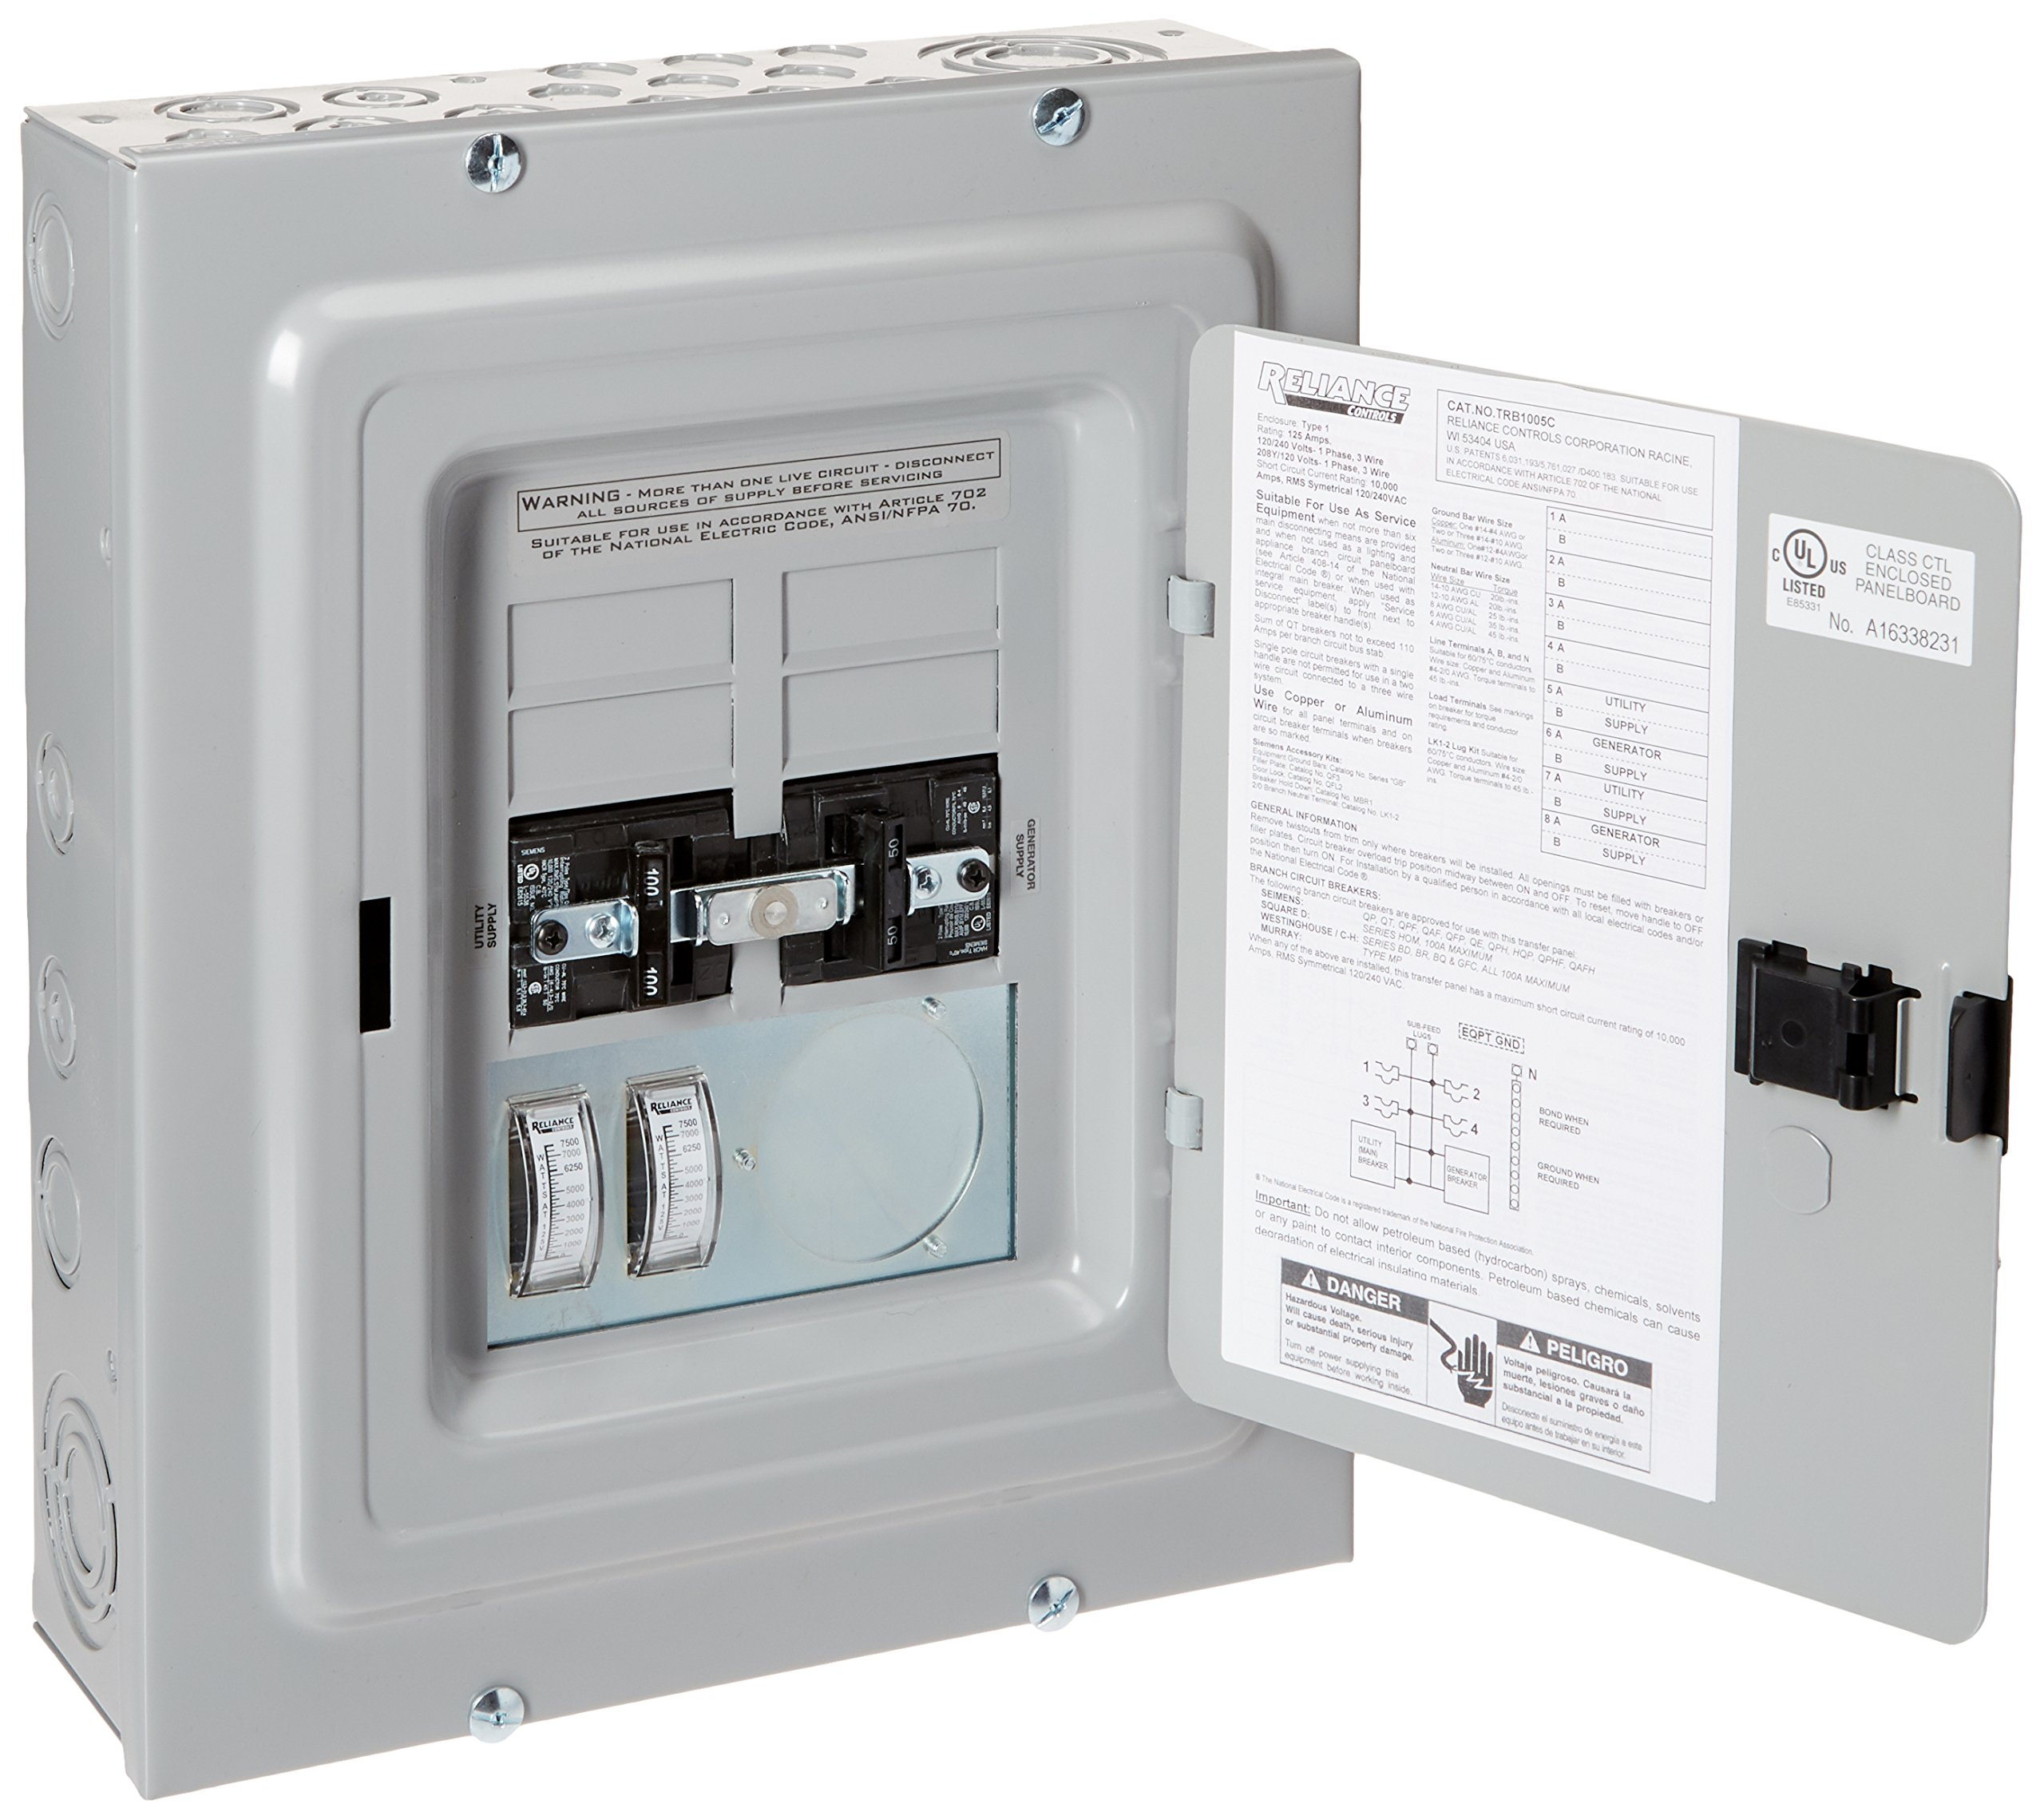 Reliance Controls Corporation TRB1005C Transfer Panel with Meters, 50-Amp by Reliance Controls